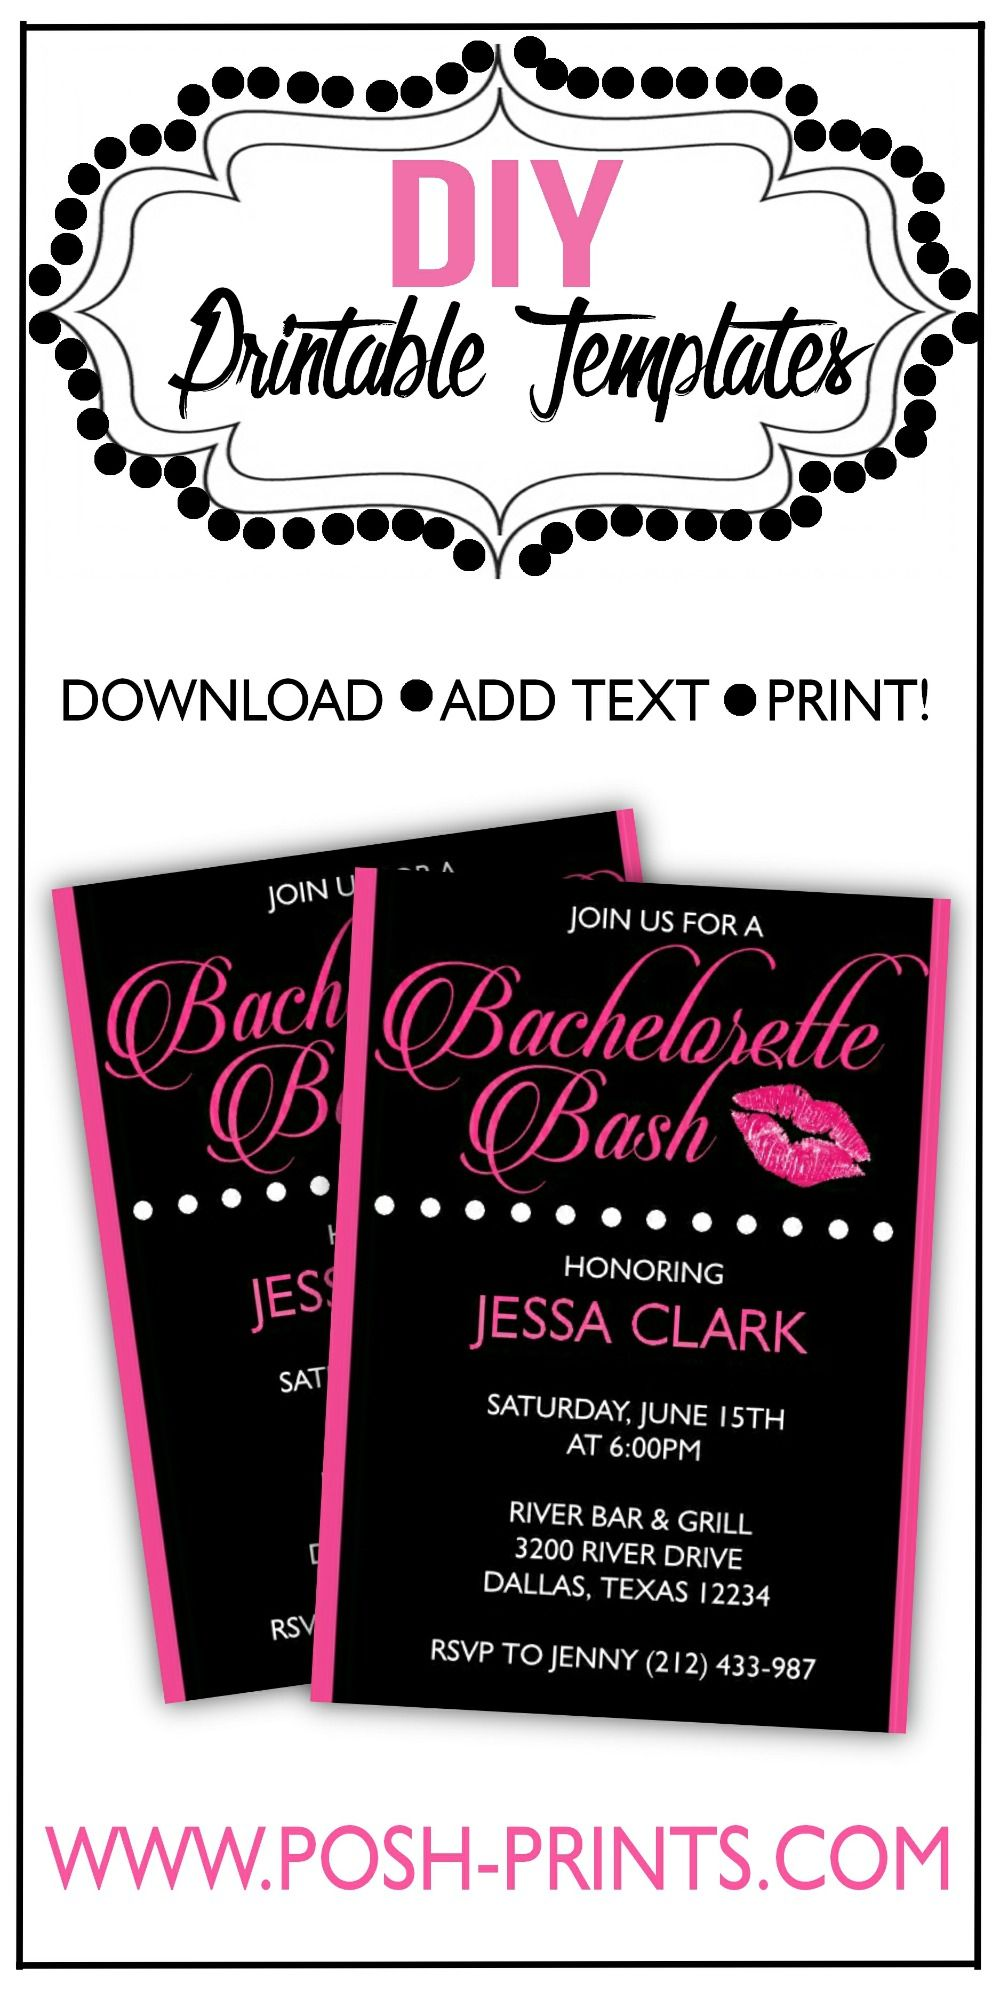 Printable Bachelorette Party Invitation | Our Business Followers ...